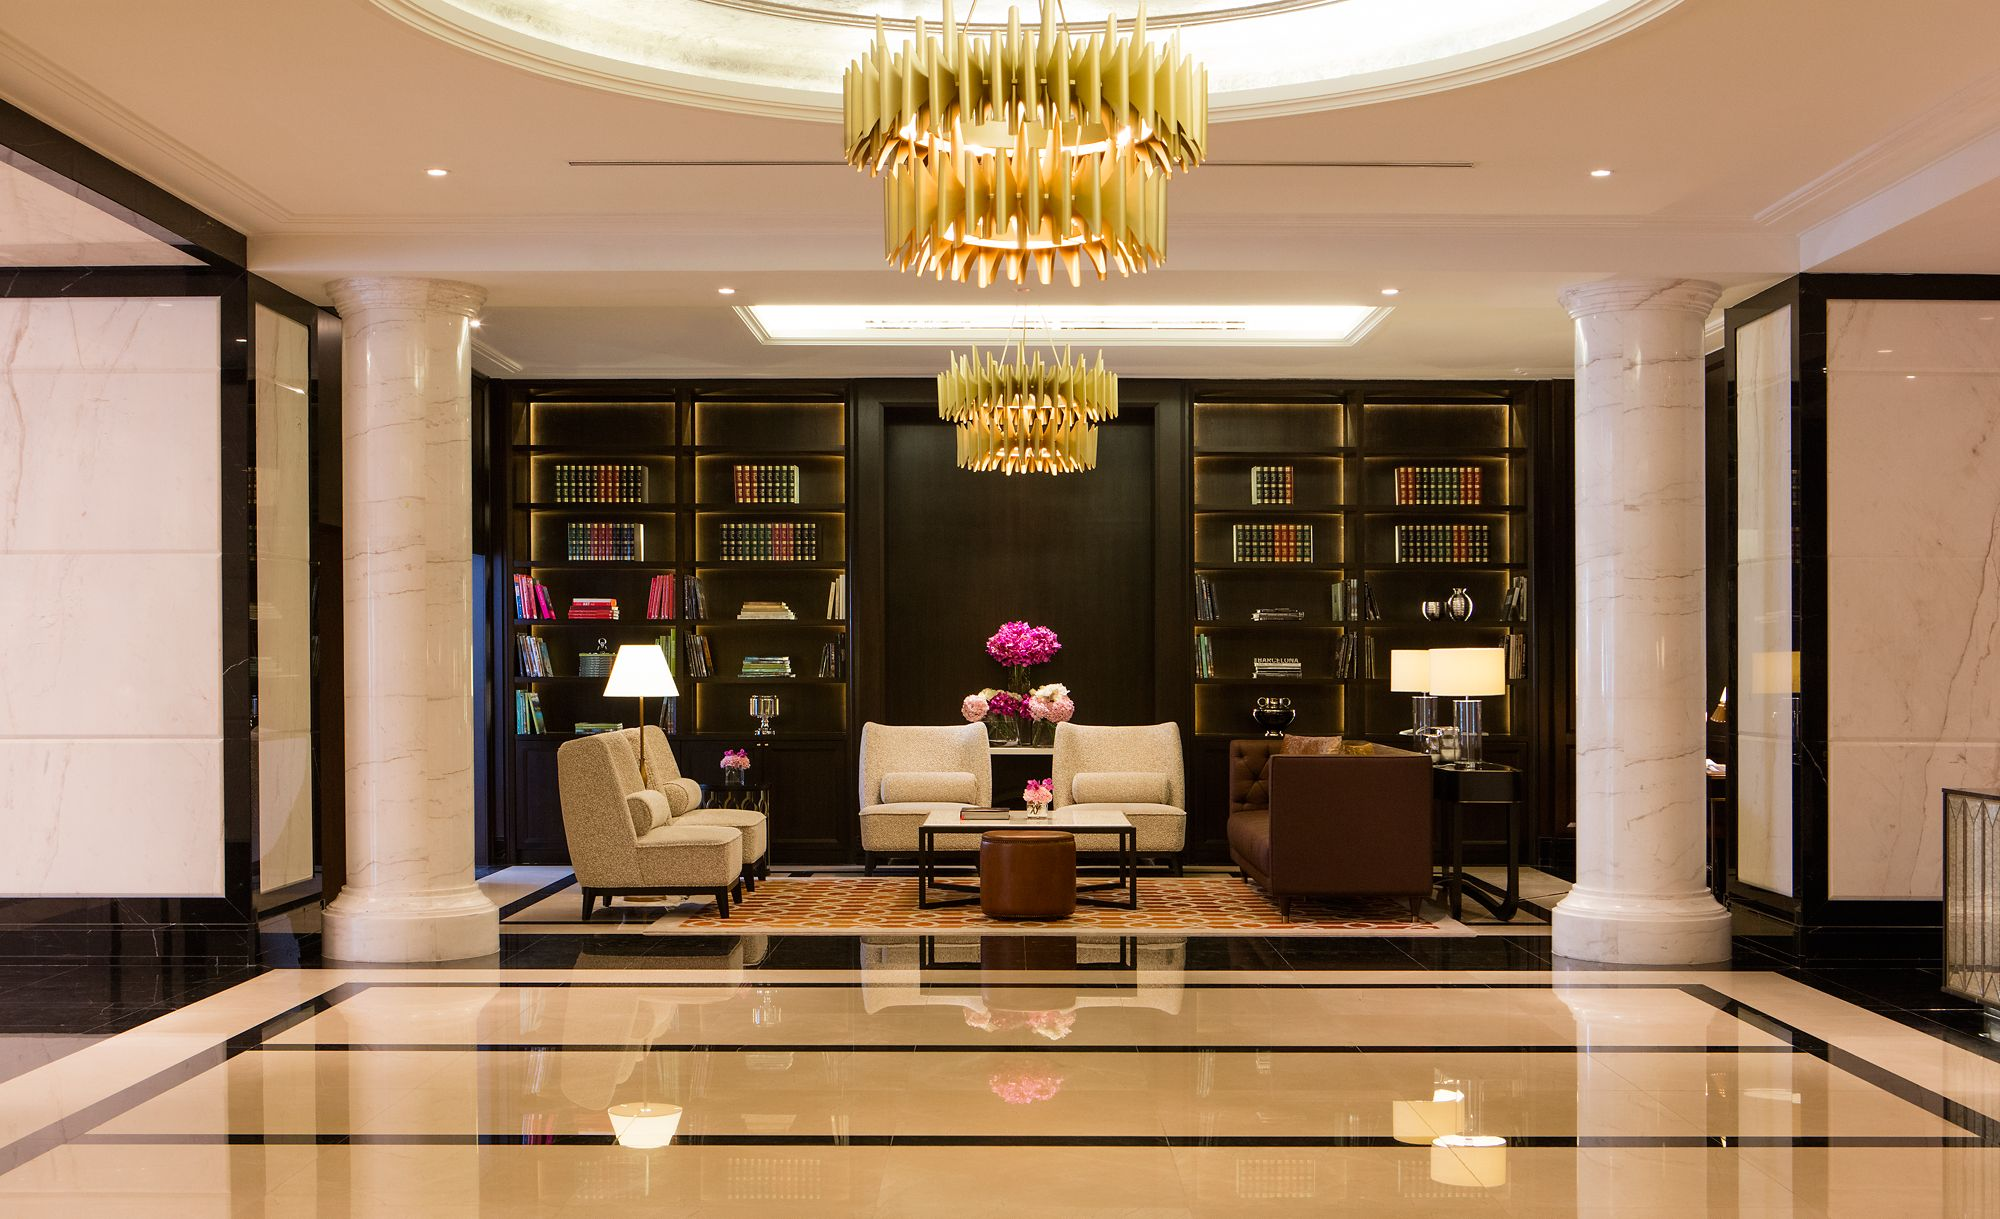 Intimate seating in a space to the side of the lobby where floor-to-ceiling bookcases create a cozy ambience